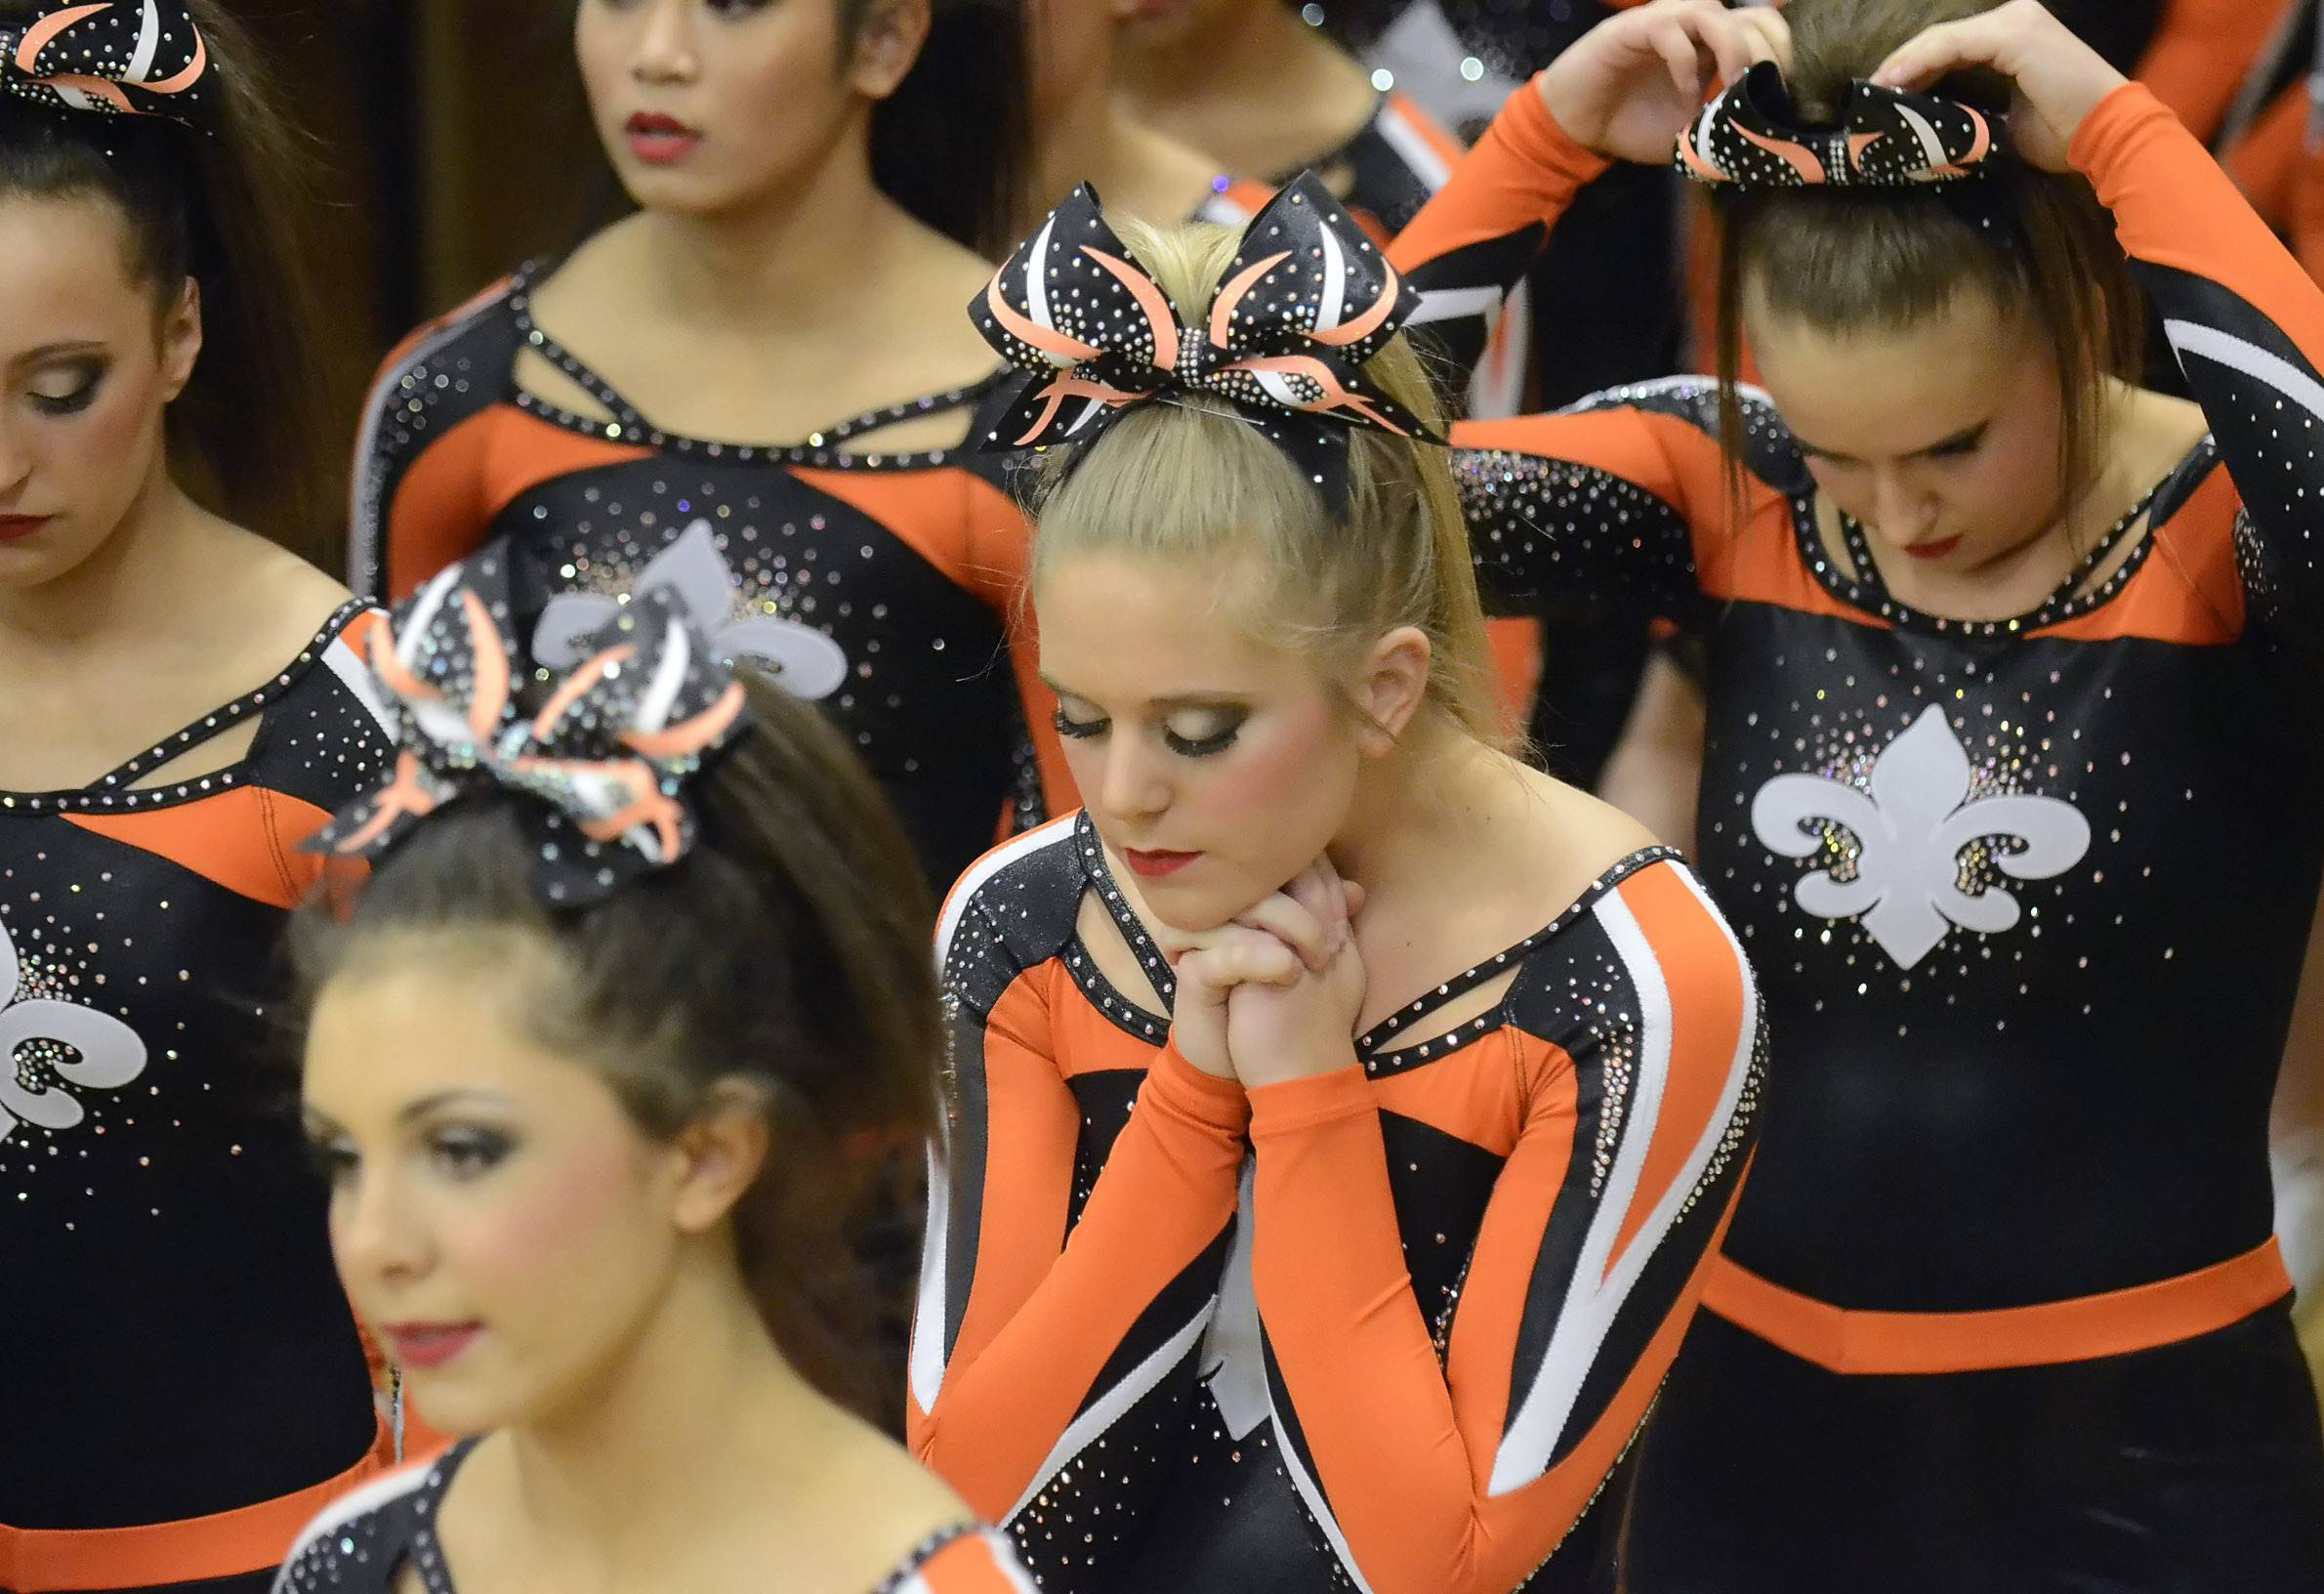 St. Charles East's Kennedy Gift, 15, takes a moment to herself before the Saints take the floor for their performance at the IHSA Cheerleading sectional at DeKalb High School Saturday.